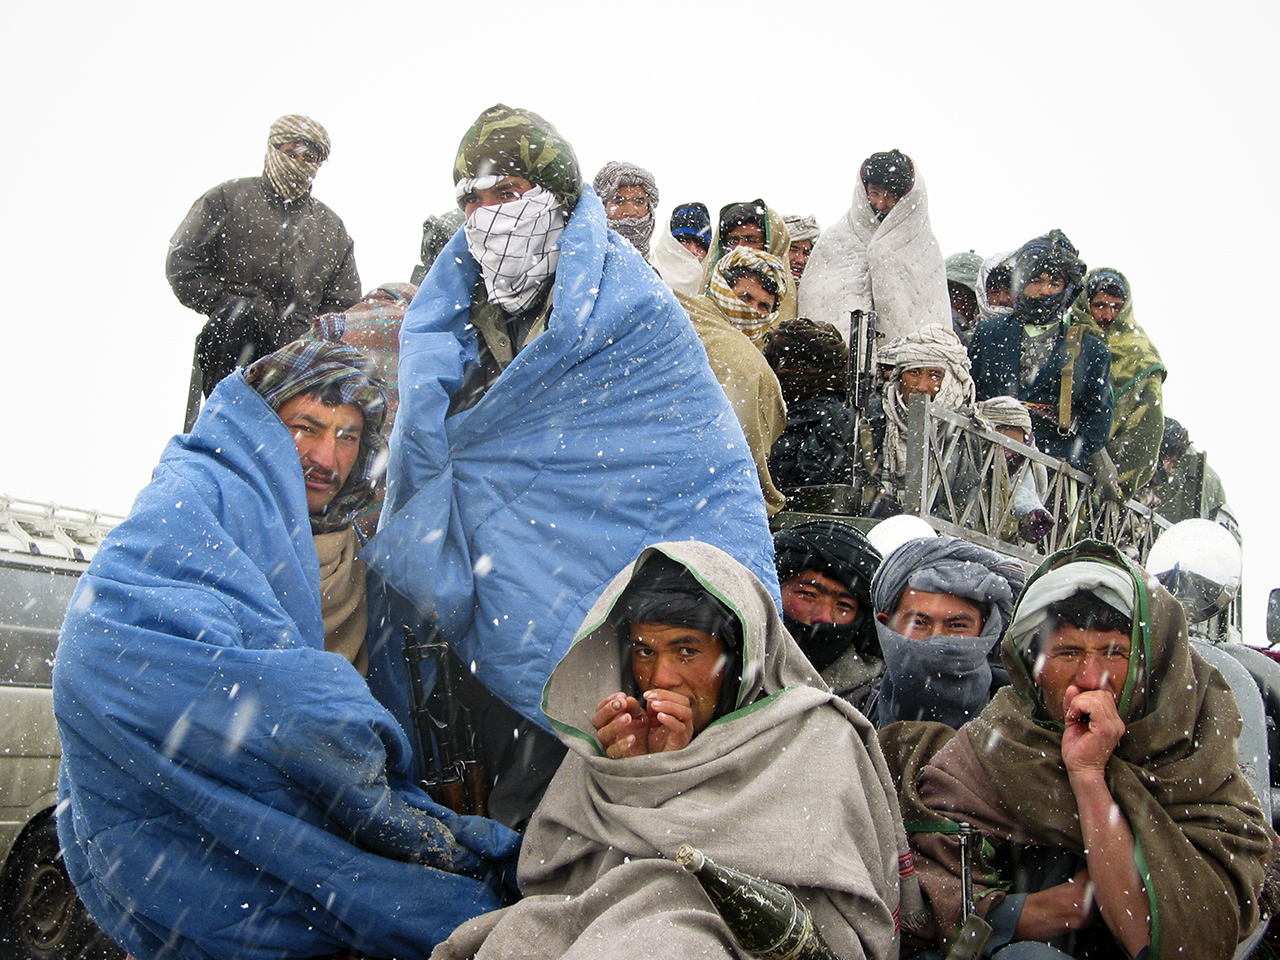 Balkh, Afghanistan  December 3, 2001  Northern Alliance soldiers wait in a snowstorm while their commanders negotiate the surrender of a group of Taliban still holding out in Balkh, Afghanistan.  PHOTOGRAPH by ALAN CHIN